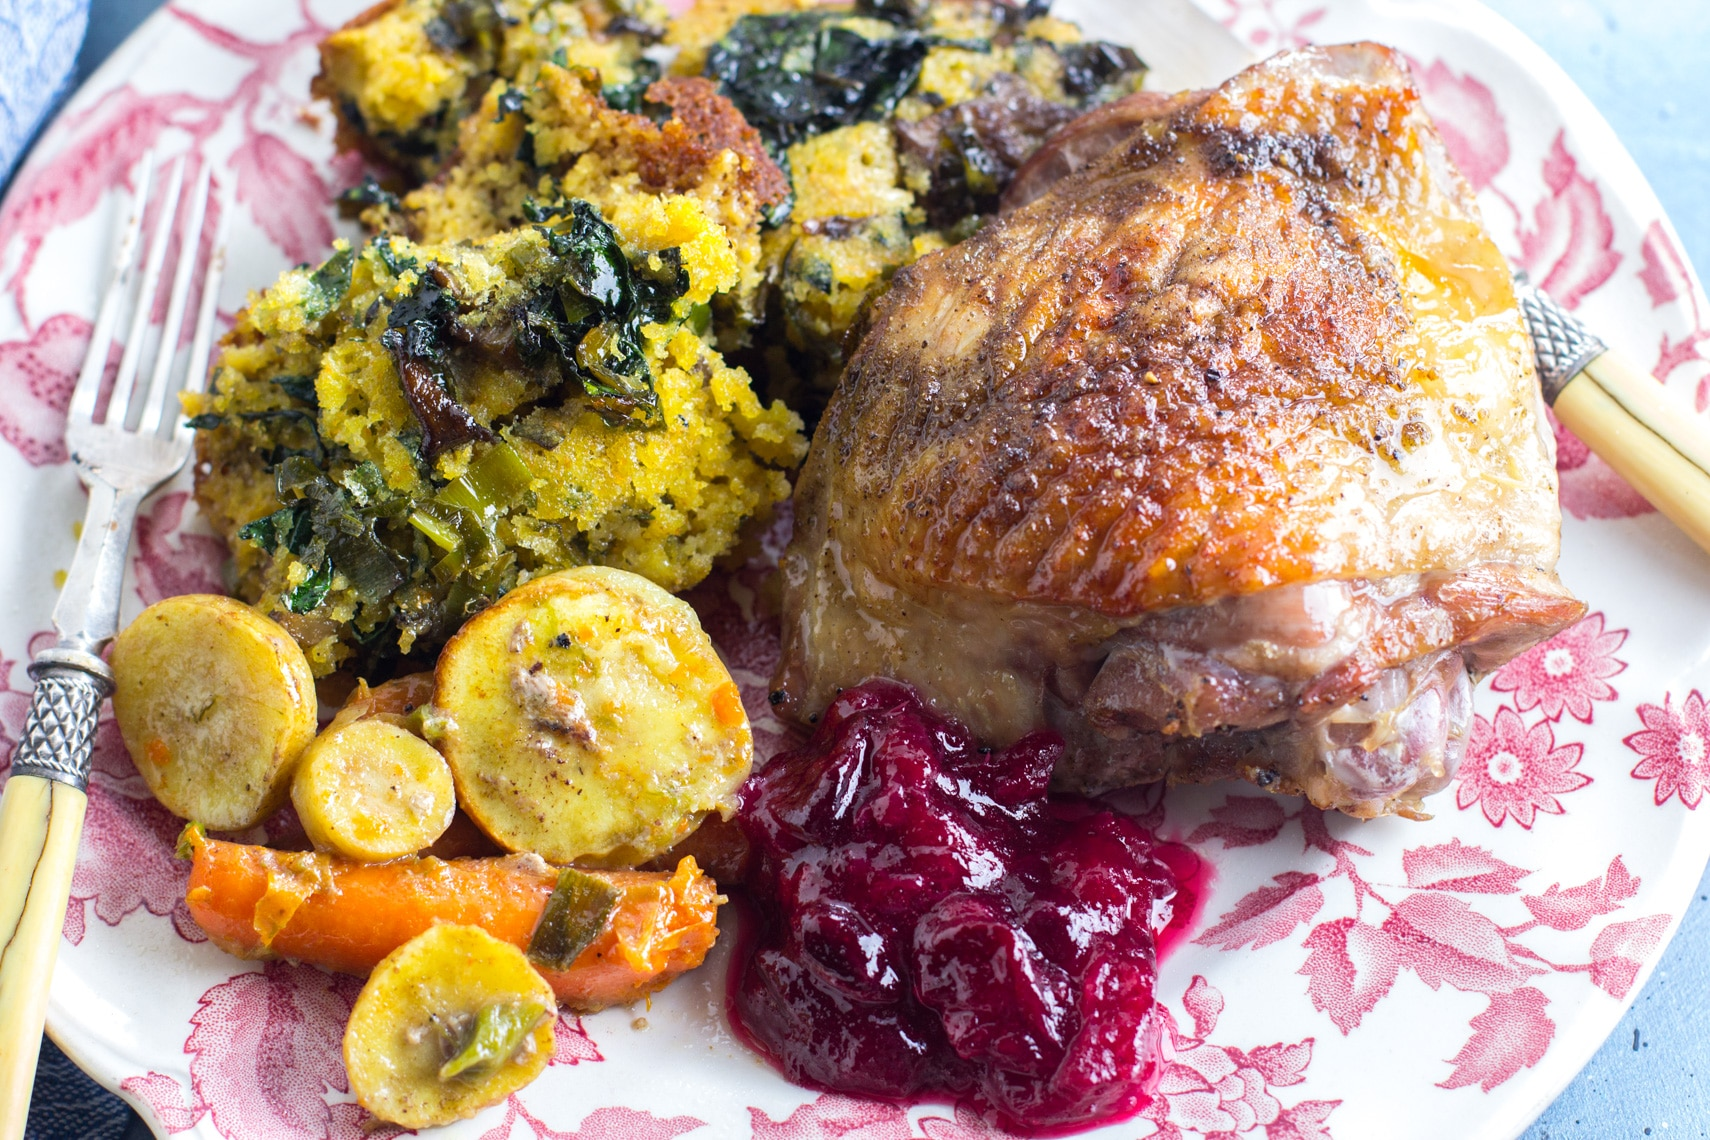 pink and white decorative plate holding stuffing, turkey thigh, cranberry sauce and vegetables; antique fork alongside